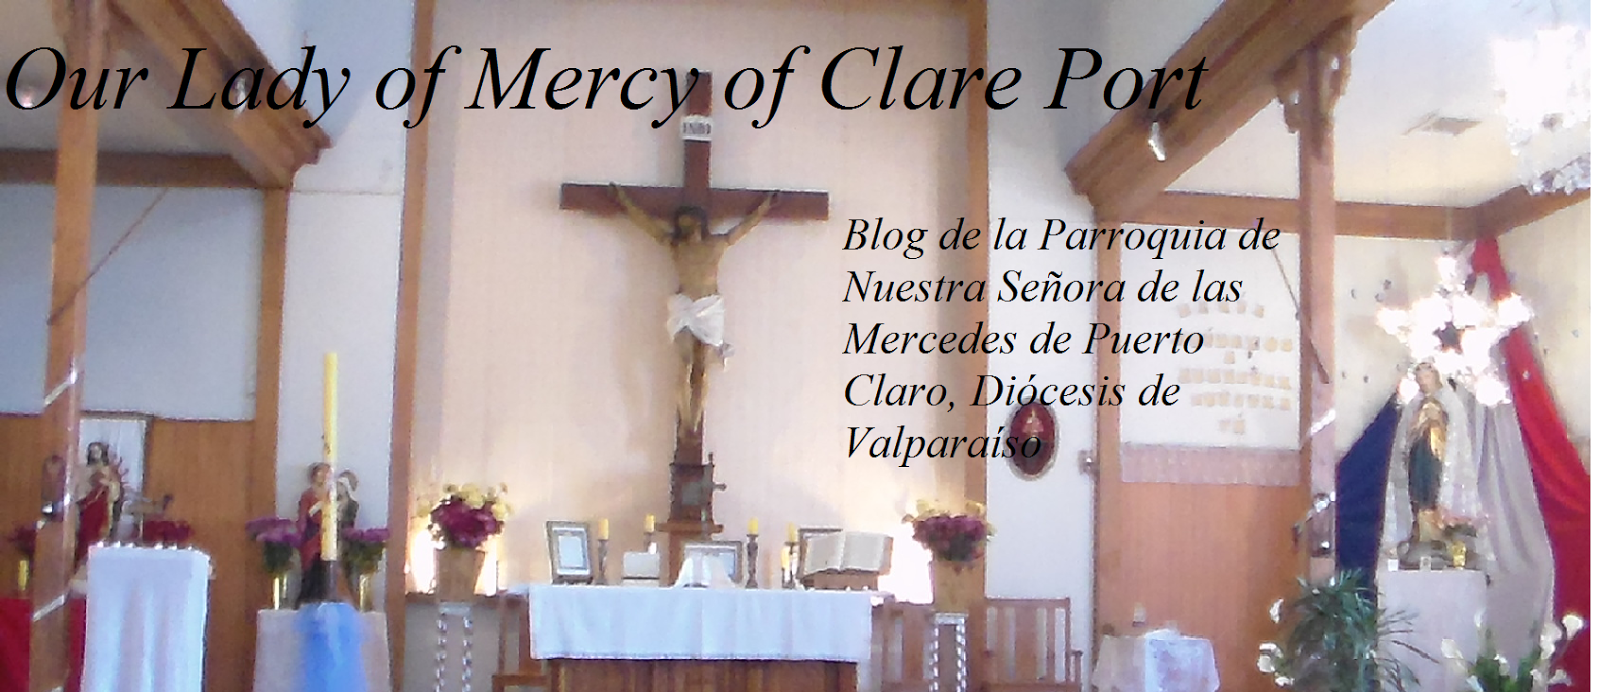 Our Lady of Mercy of Clare Port